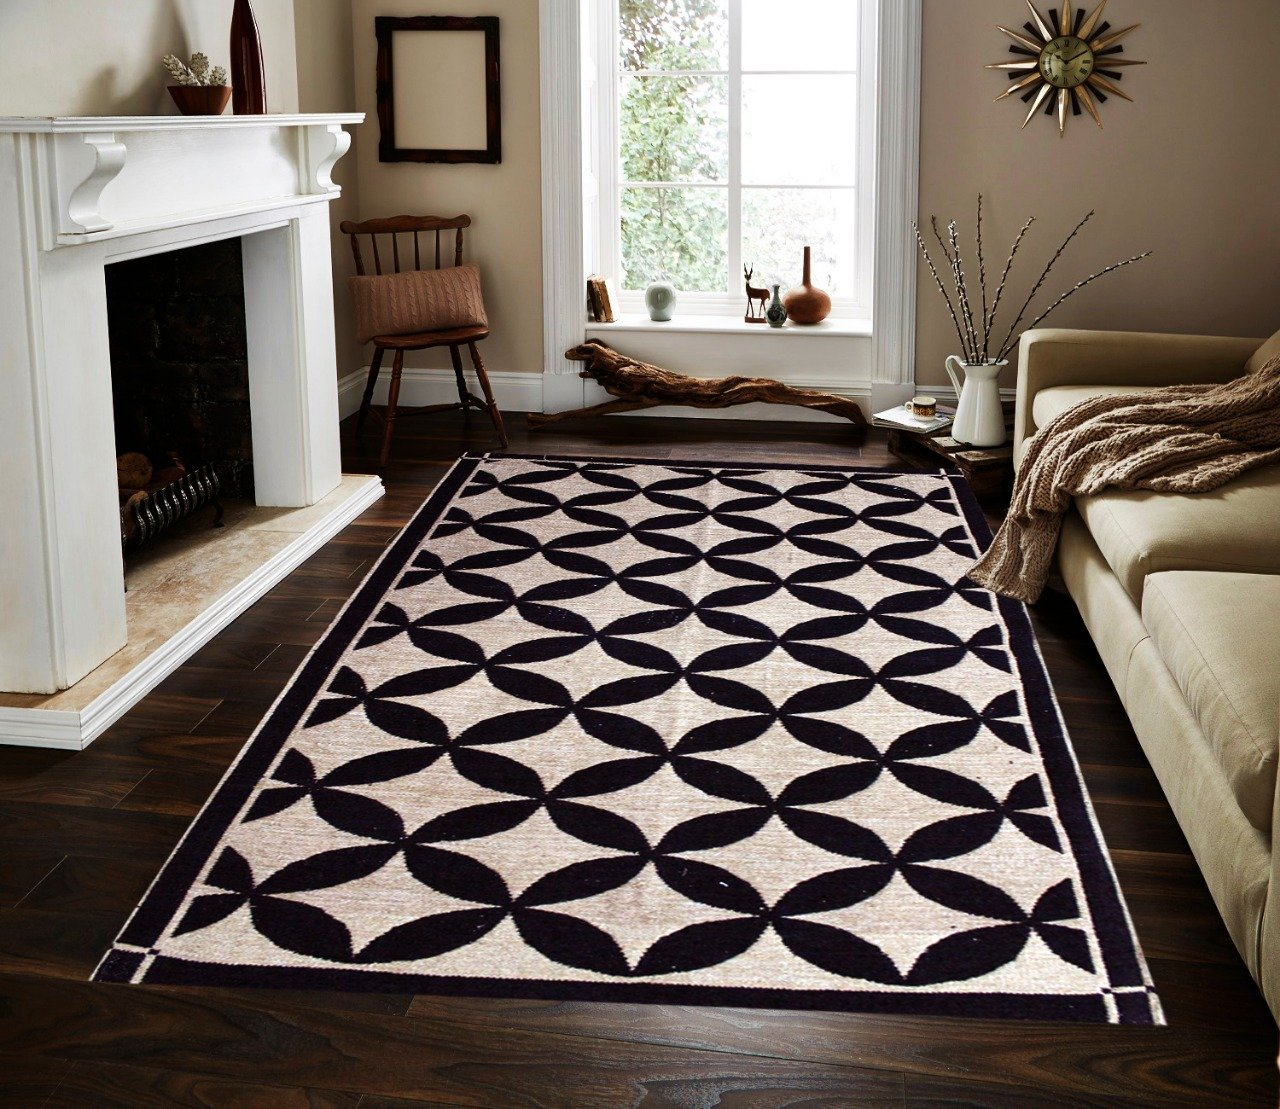 Geometric Floral - Hand-woven Woolen Rug - Double Seam - 4' x 6' - waseeh.com